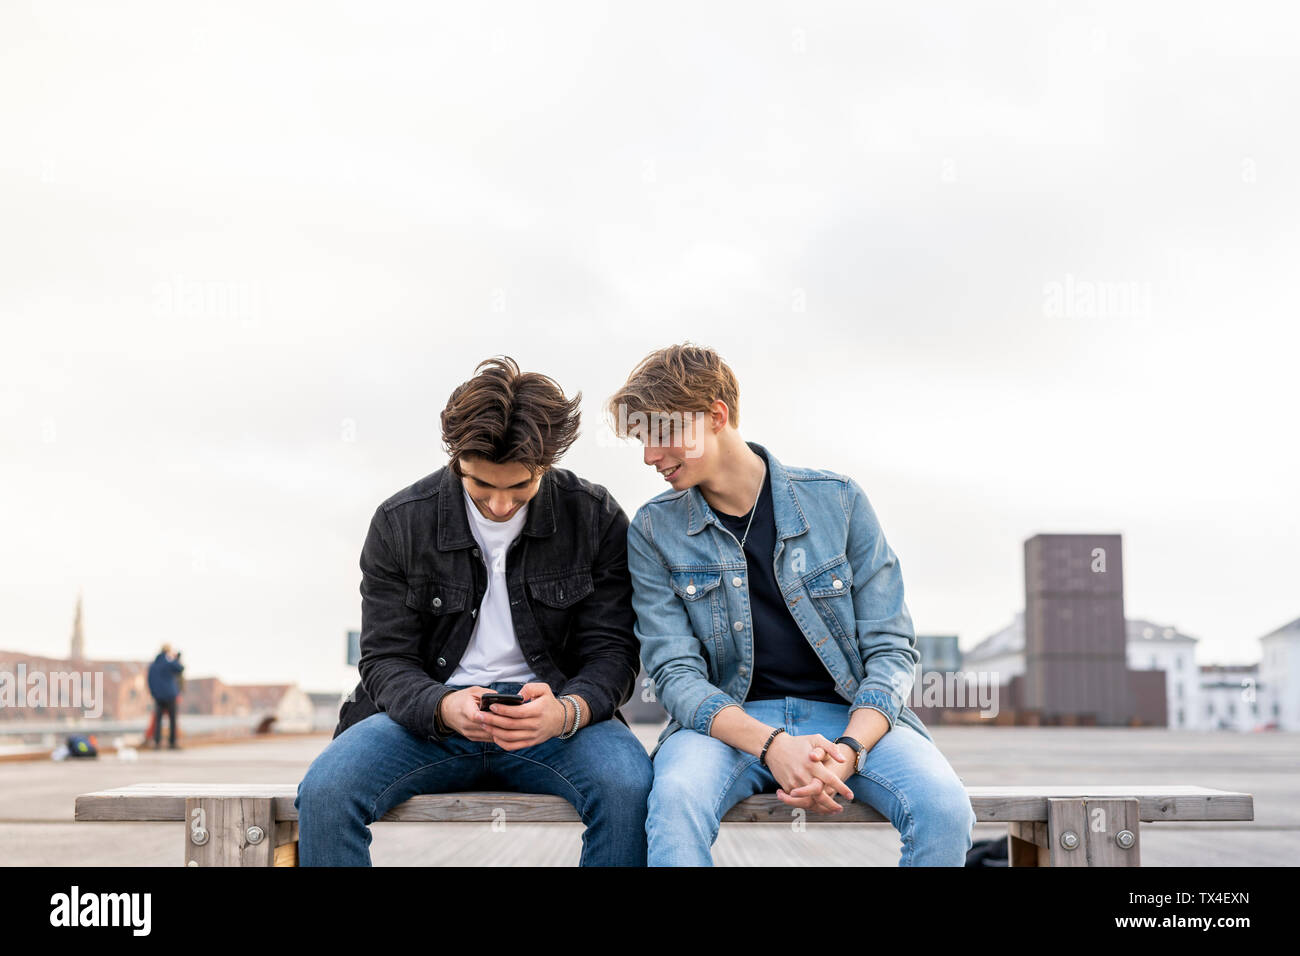 Denmark, Copenhagen, two young men sitting on a bench using cell phone - Stock Image